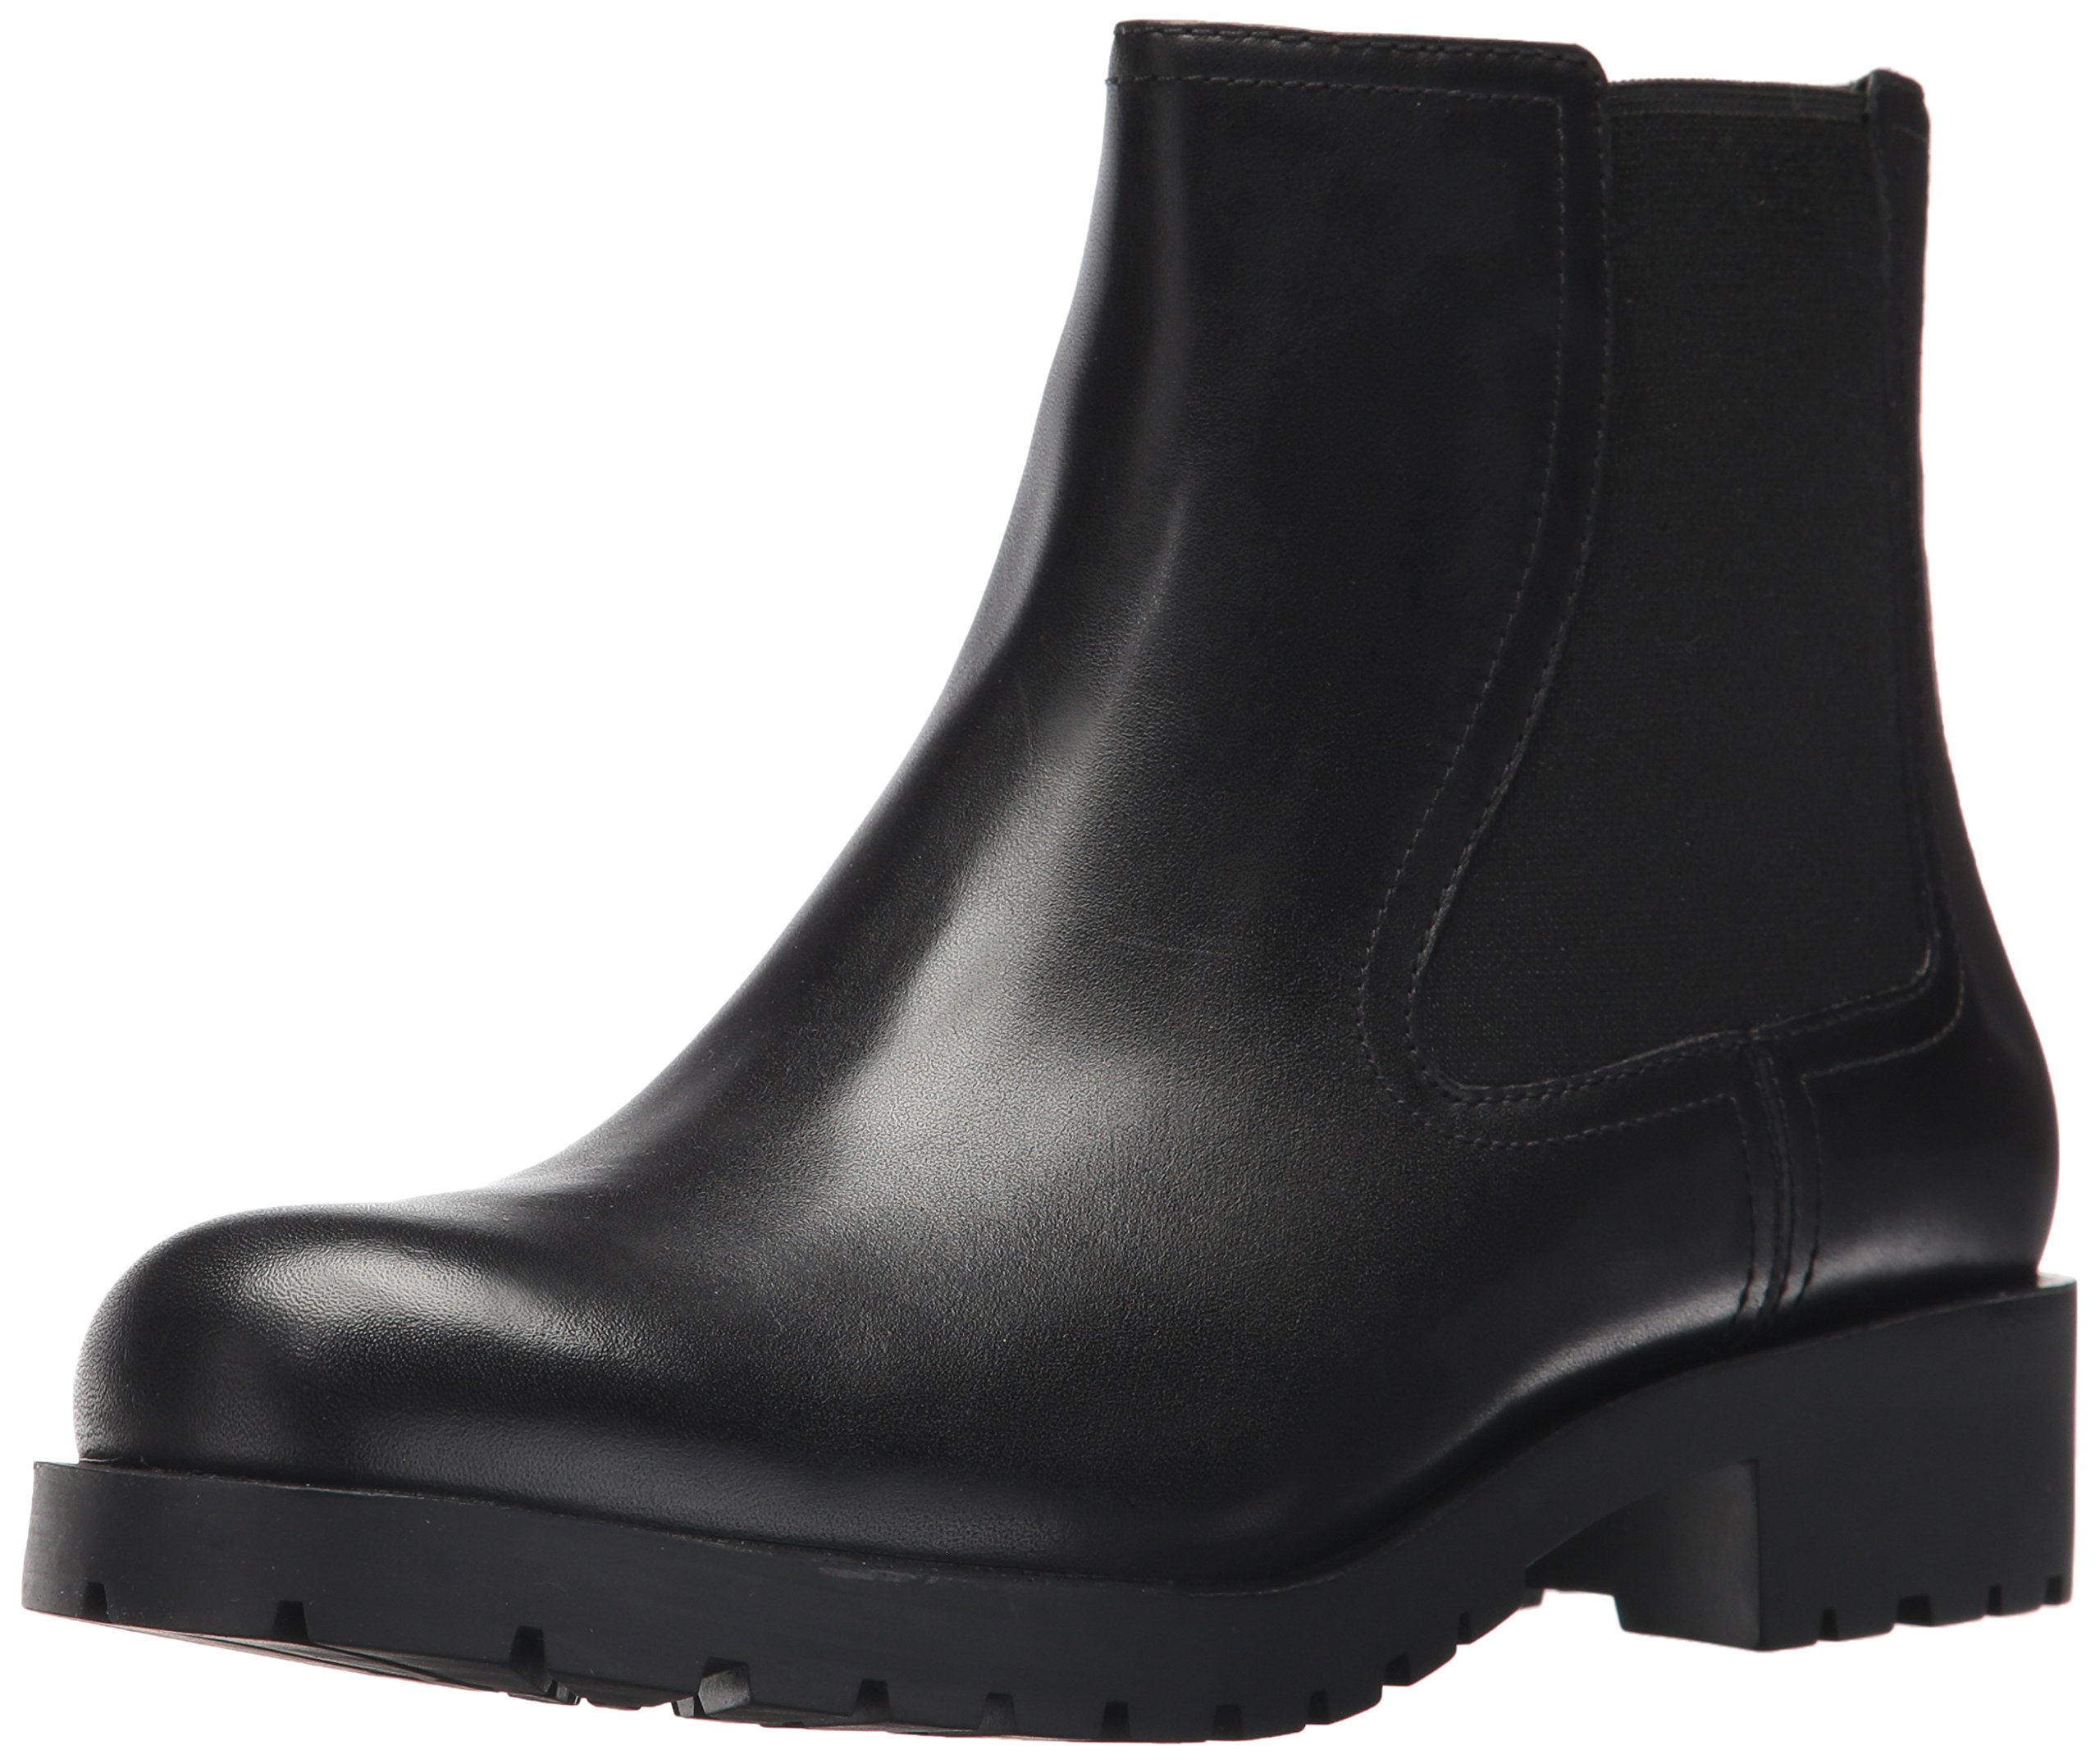 Cole Haan Women's Stanton WP Chelsea, Black Leather, 10 B US